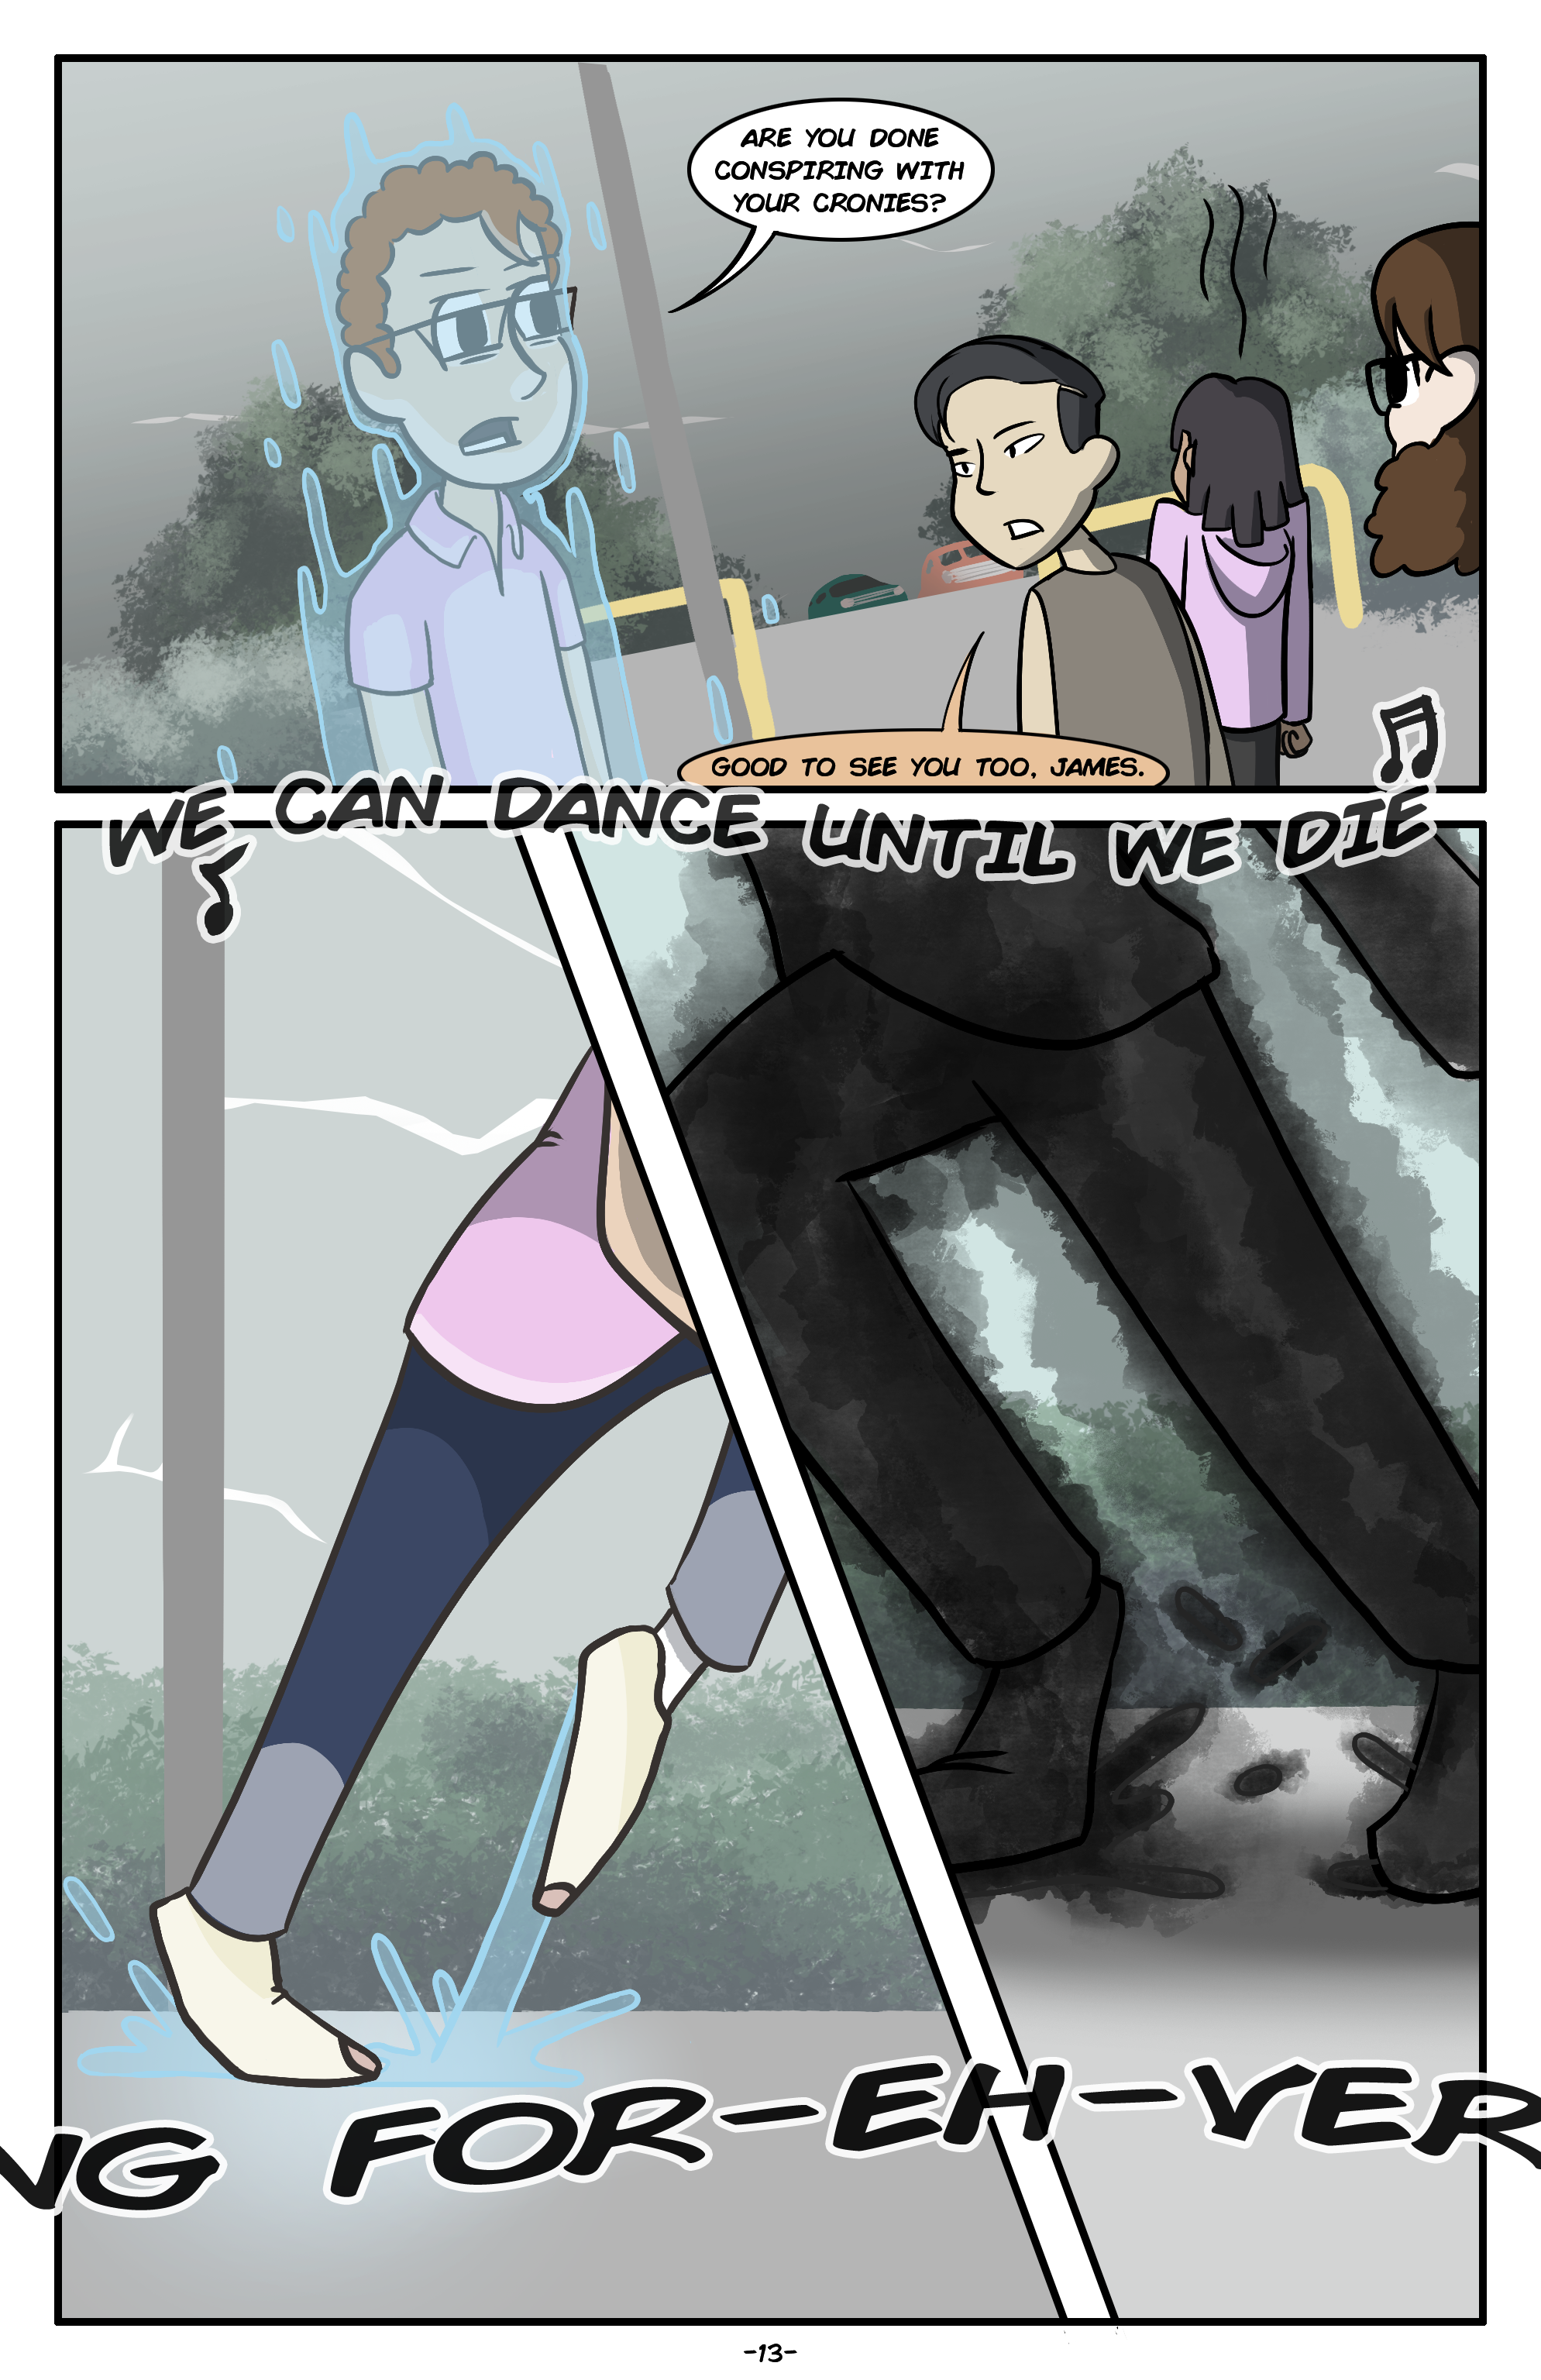 Page 13 Layout_Full-Size.png